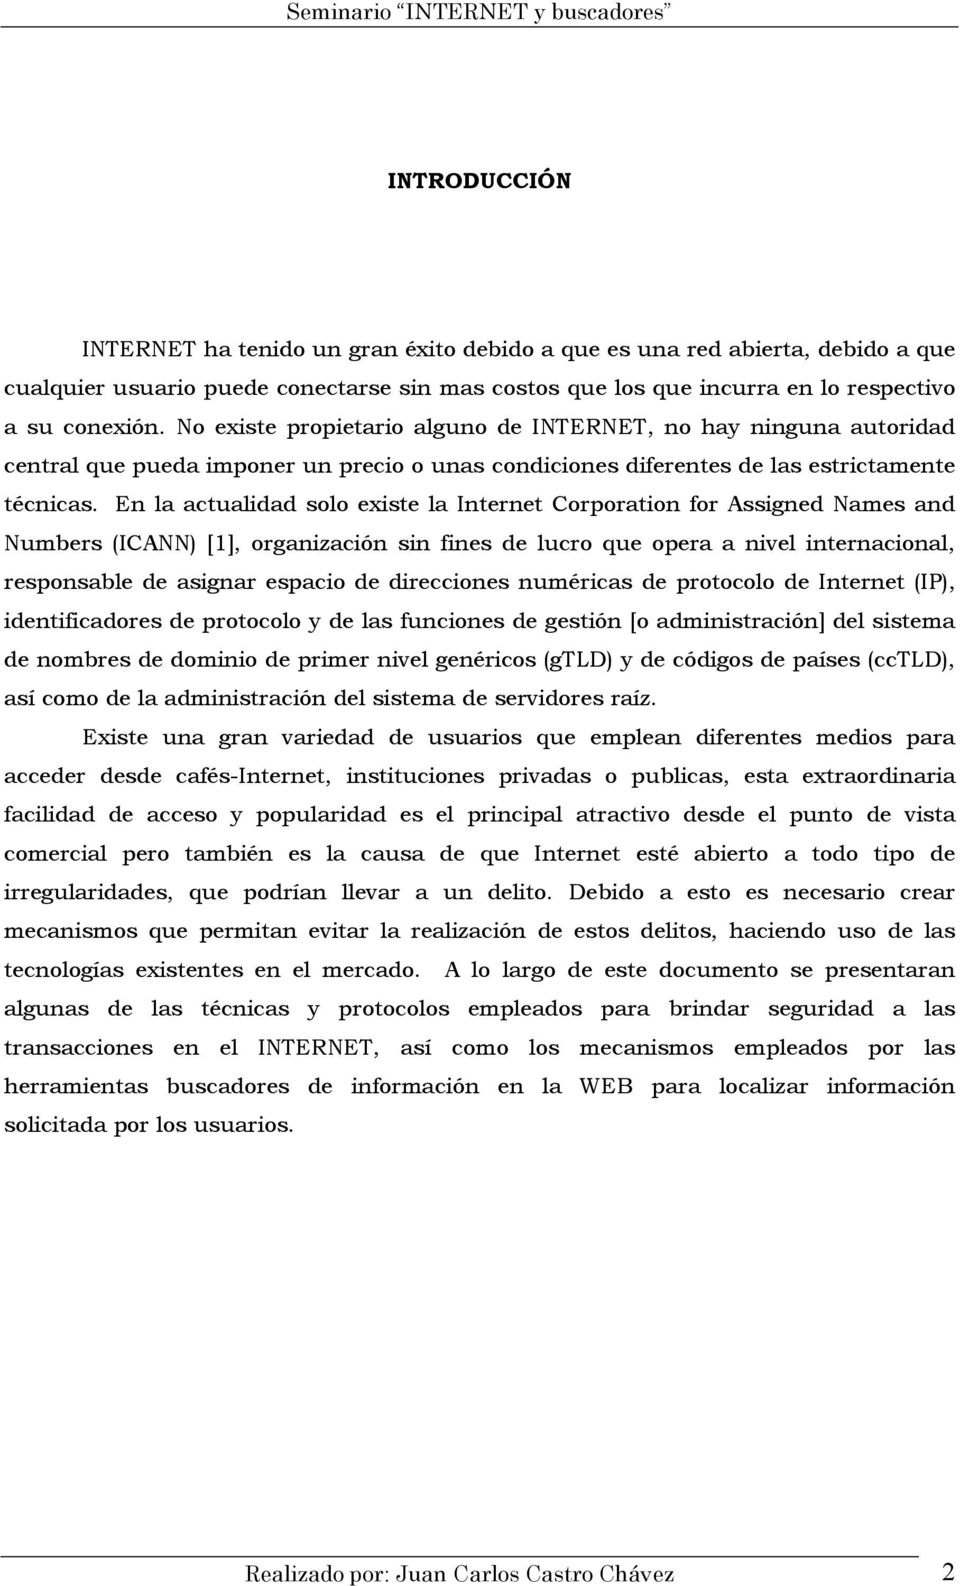 En la actualidad solo existe la Internet Corporation for Assigned Names and Numbers (ICANN) [1], organización sin fines de lucro que opera a nivel internacional, responsable de asignar espacio de